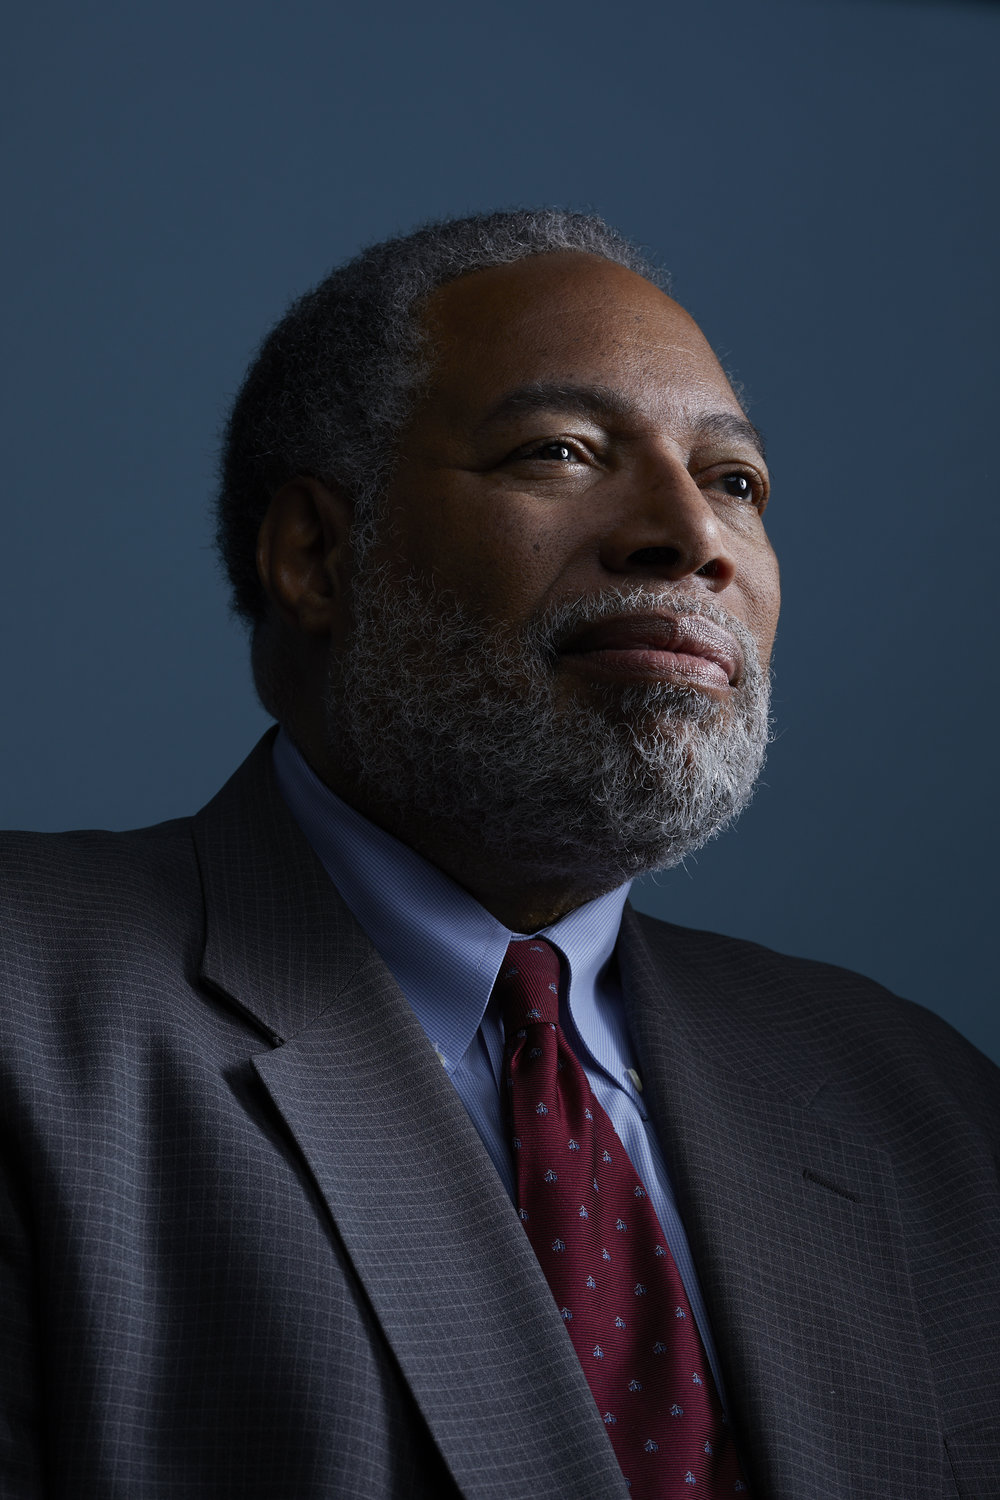 LONNIE BUNCH, NGM